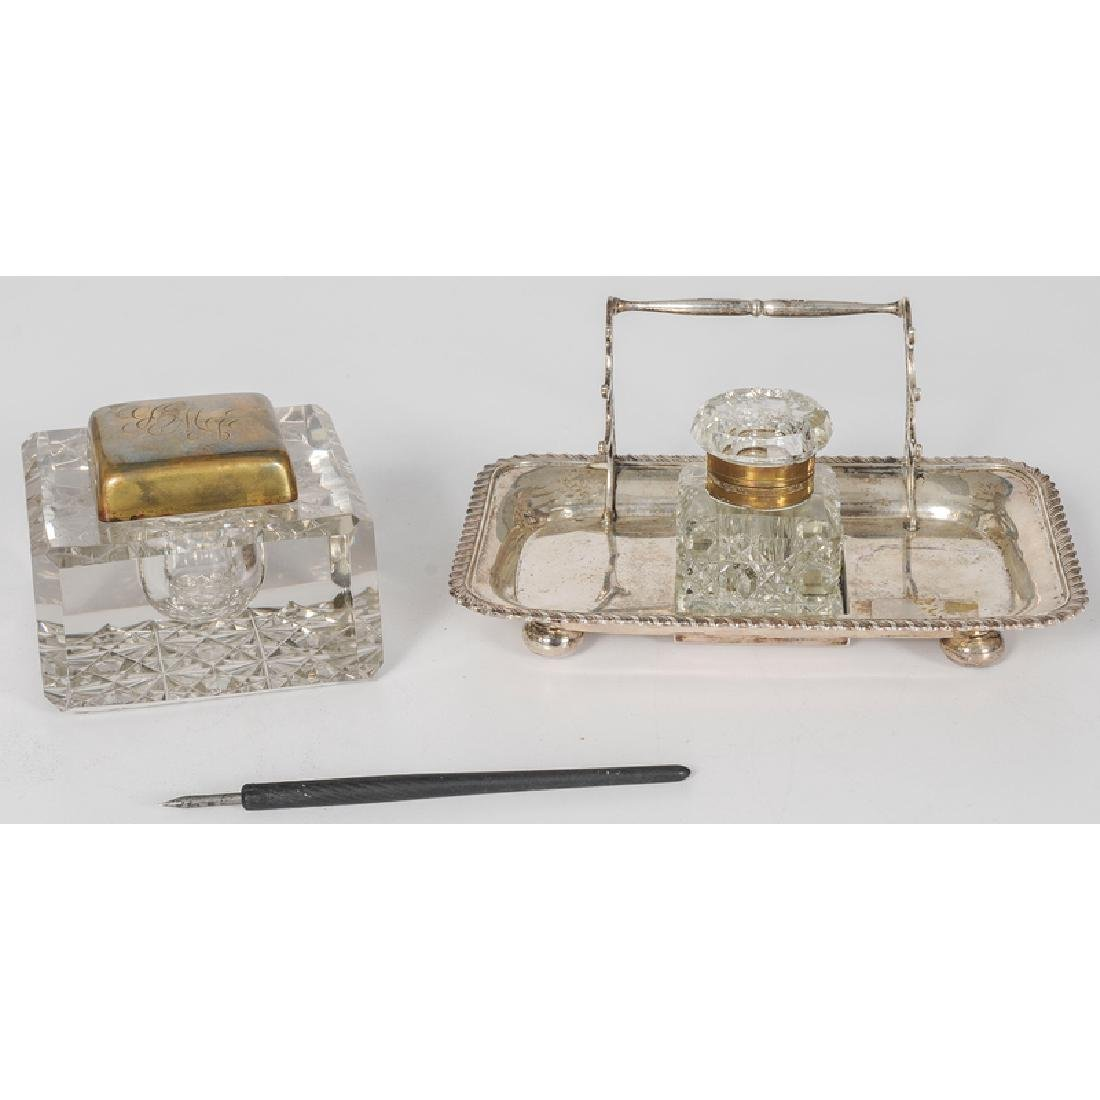 Stokes and Ireland Sterling Inkwell Stand and Glass